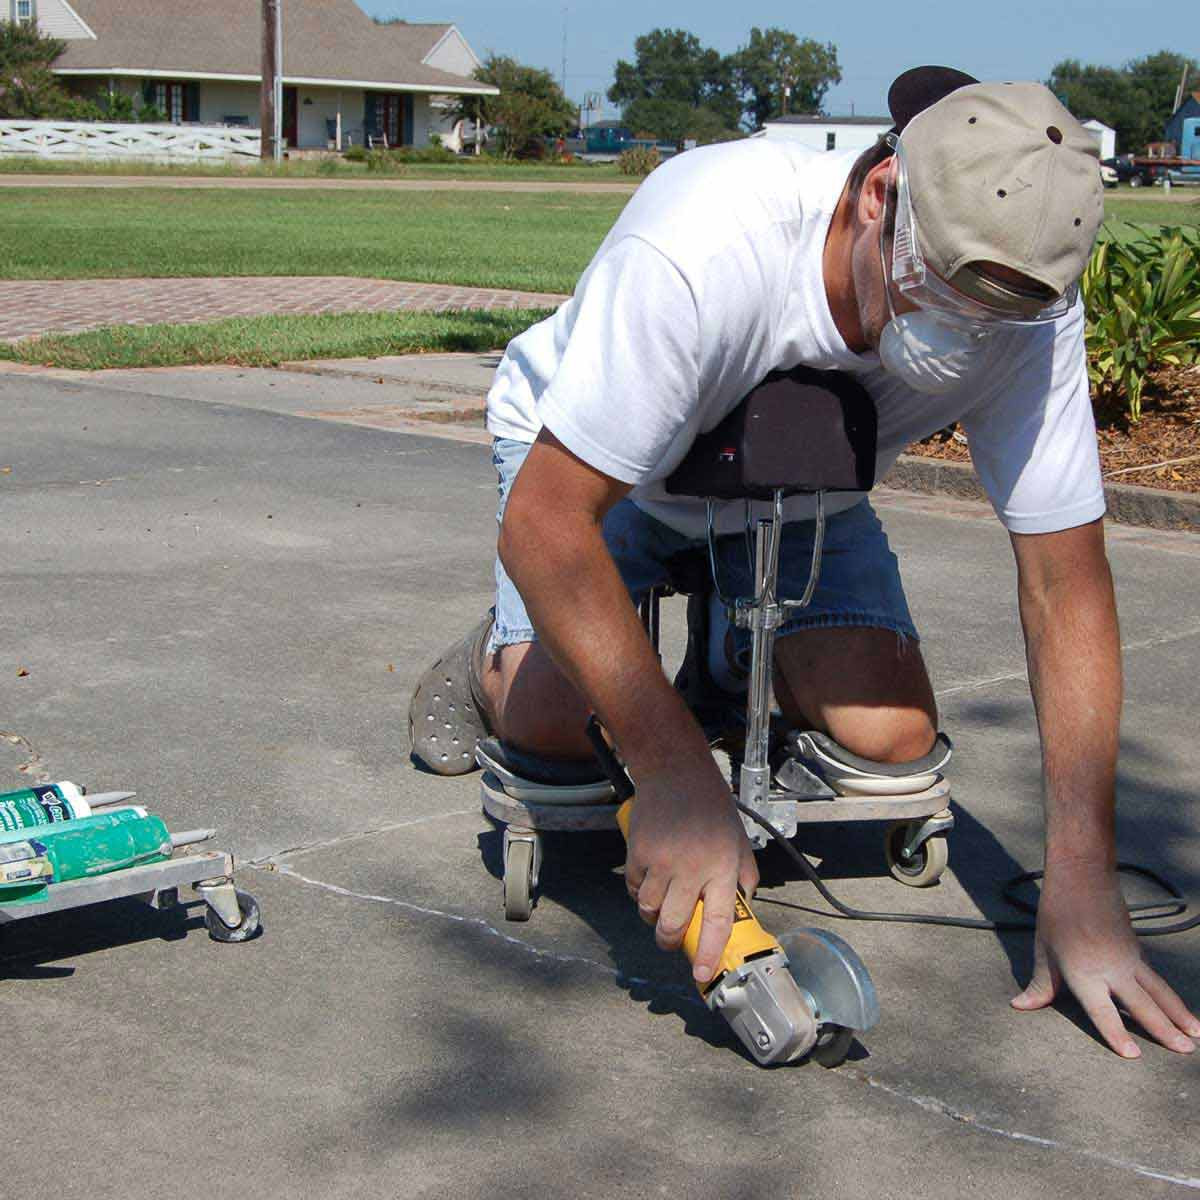 Racatac Mechanic Cart with Chest Support